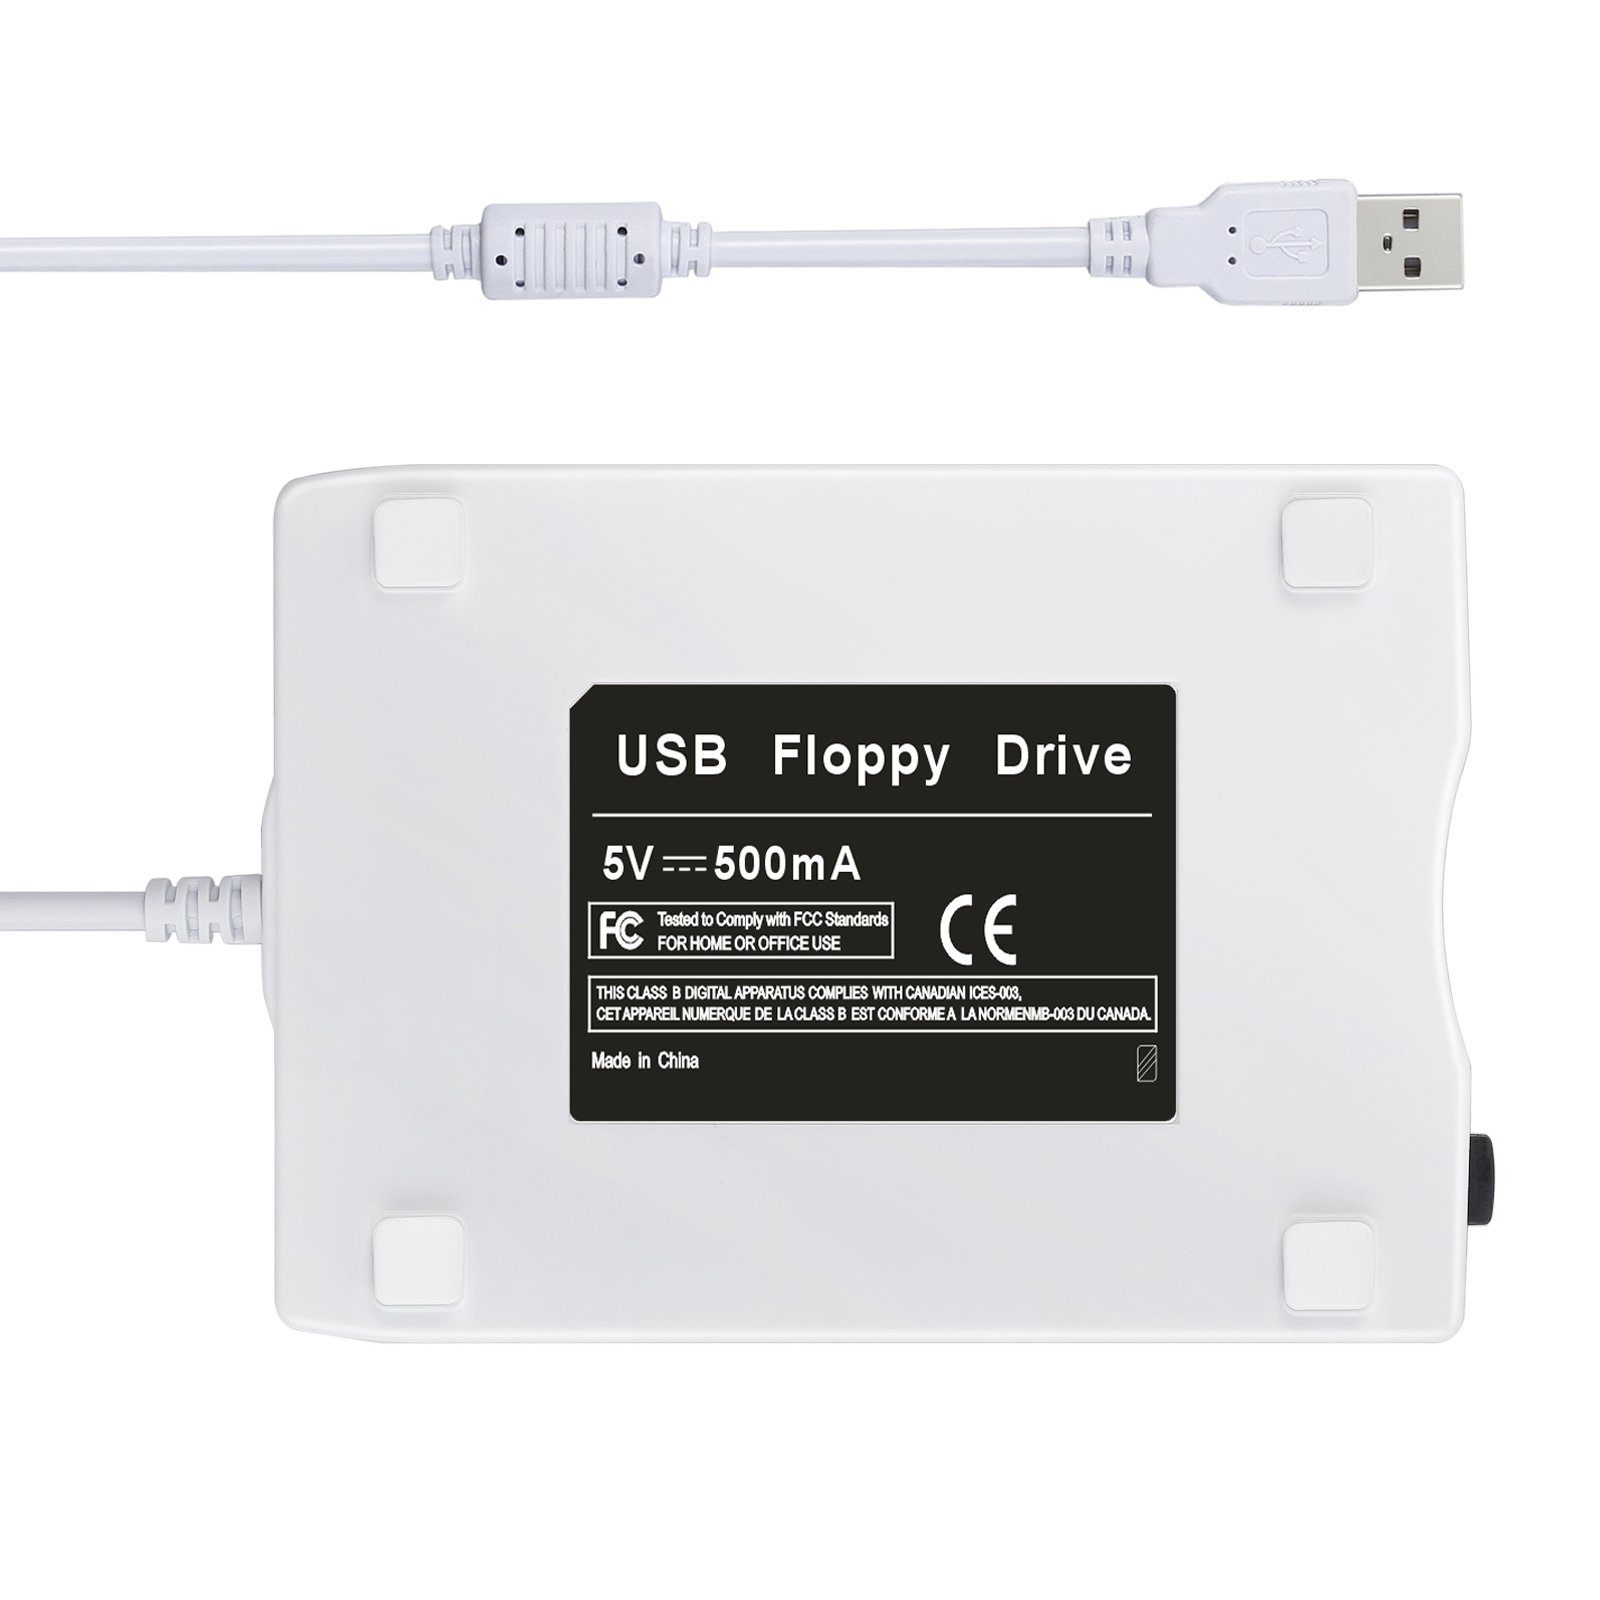 Neoteck USB Floppy Disk 3.5'' 1.44 MB FDD Floppy Disk Drive External Portable USB Floppy Disk Reader Plug and Play for Laptop PC MAC Windows 10 Windows 8 7 VISTA XP ME 2000 SE 98-White by Neoteck (Image #4)